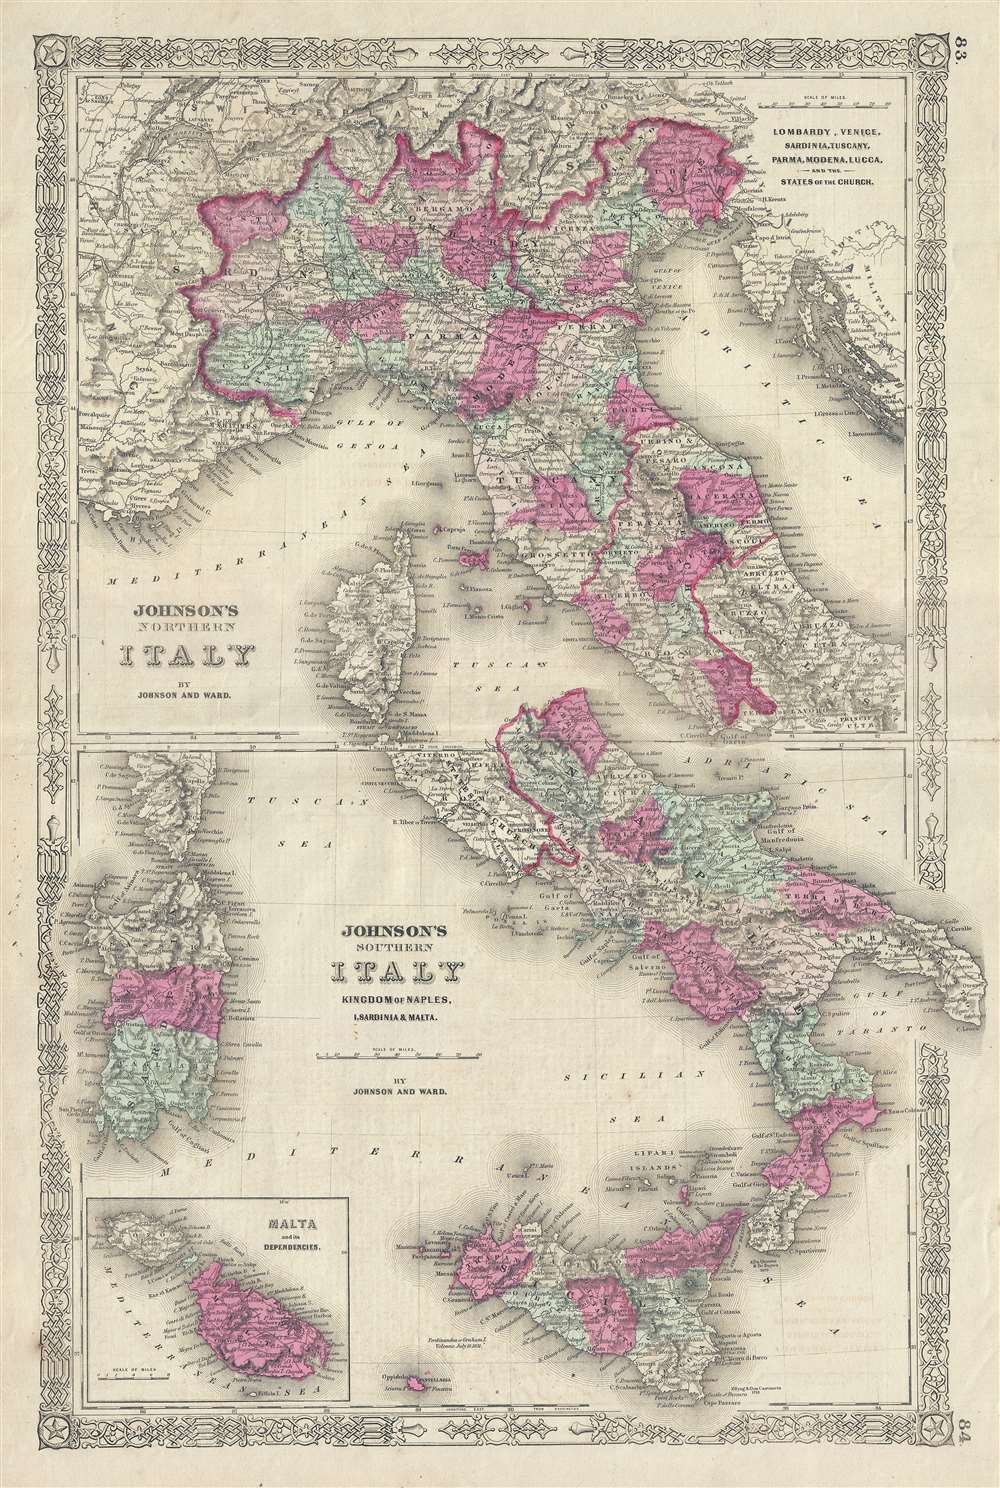 Sicily On Map Of Italy.Johnson S Northern Italy Johnson S Southern Italy Kingdom Of Naples